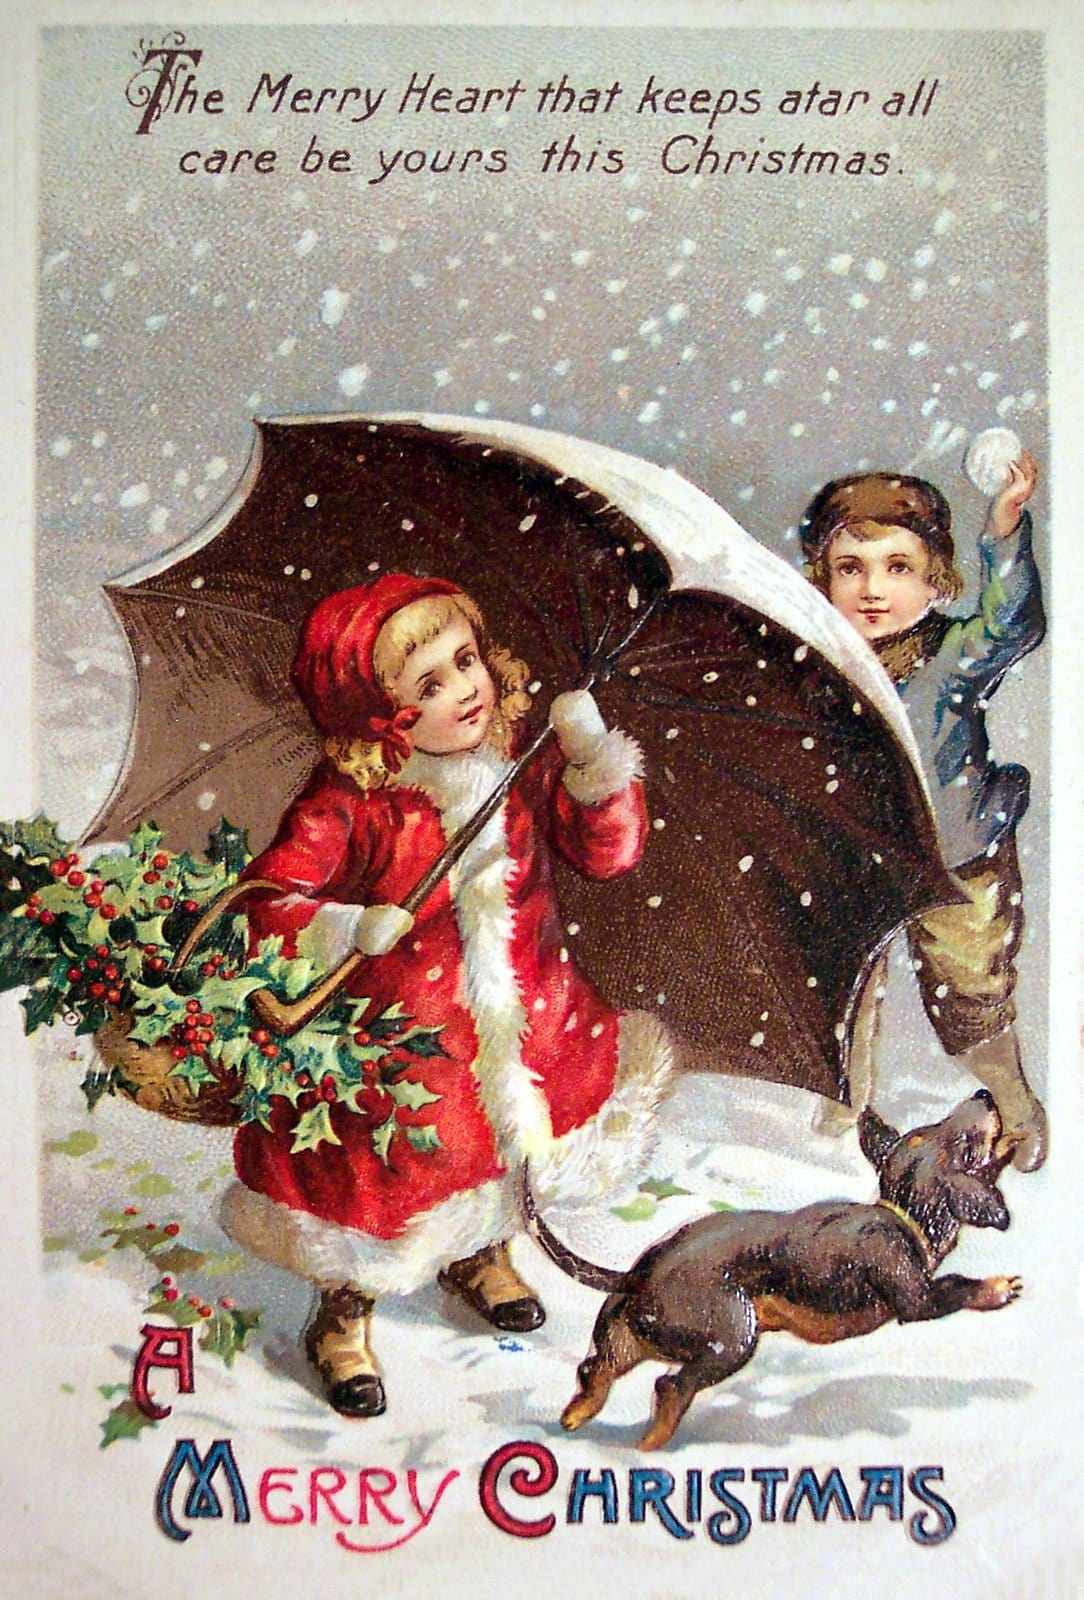 Merry Christmas - Antique postcard with kids and a happy dog in the snow